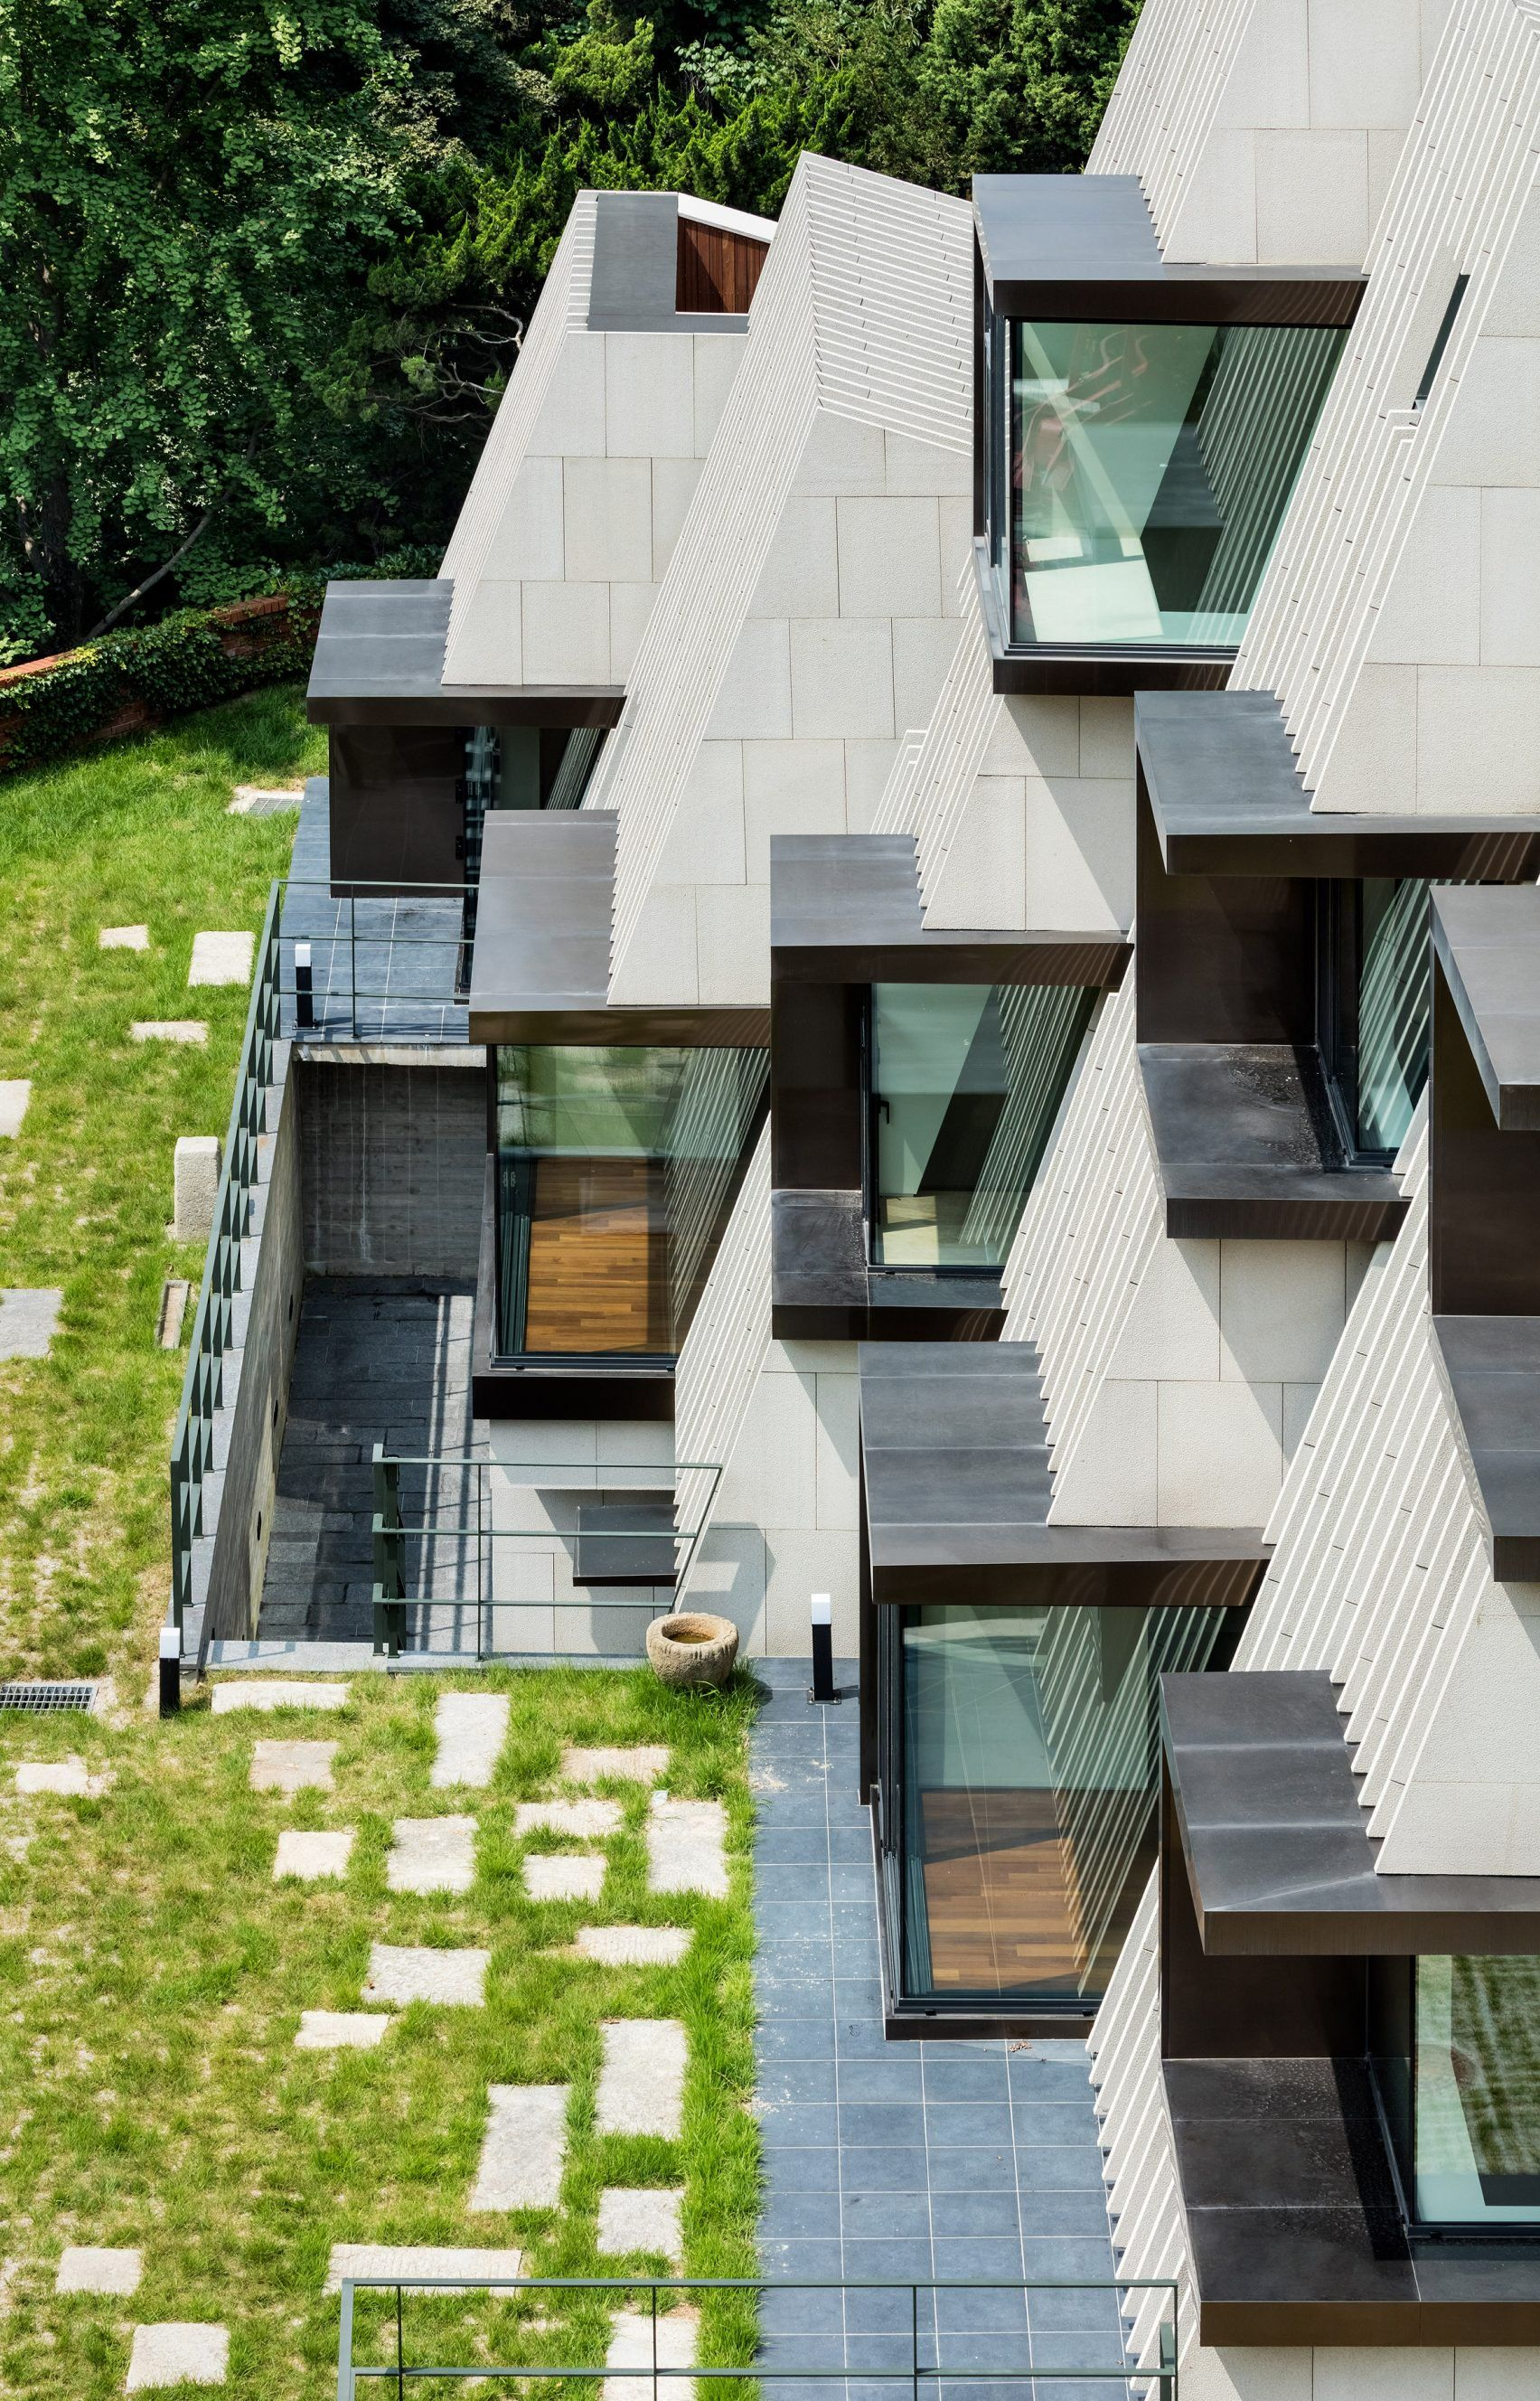 Stone Fins Cover Slanted Walls Of Mountainside House Near Seoul Architecture Modern Architecture Design House Design